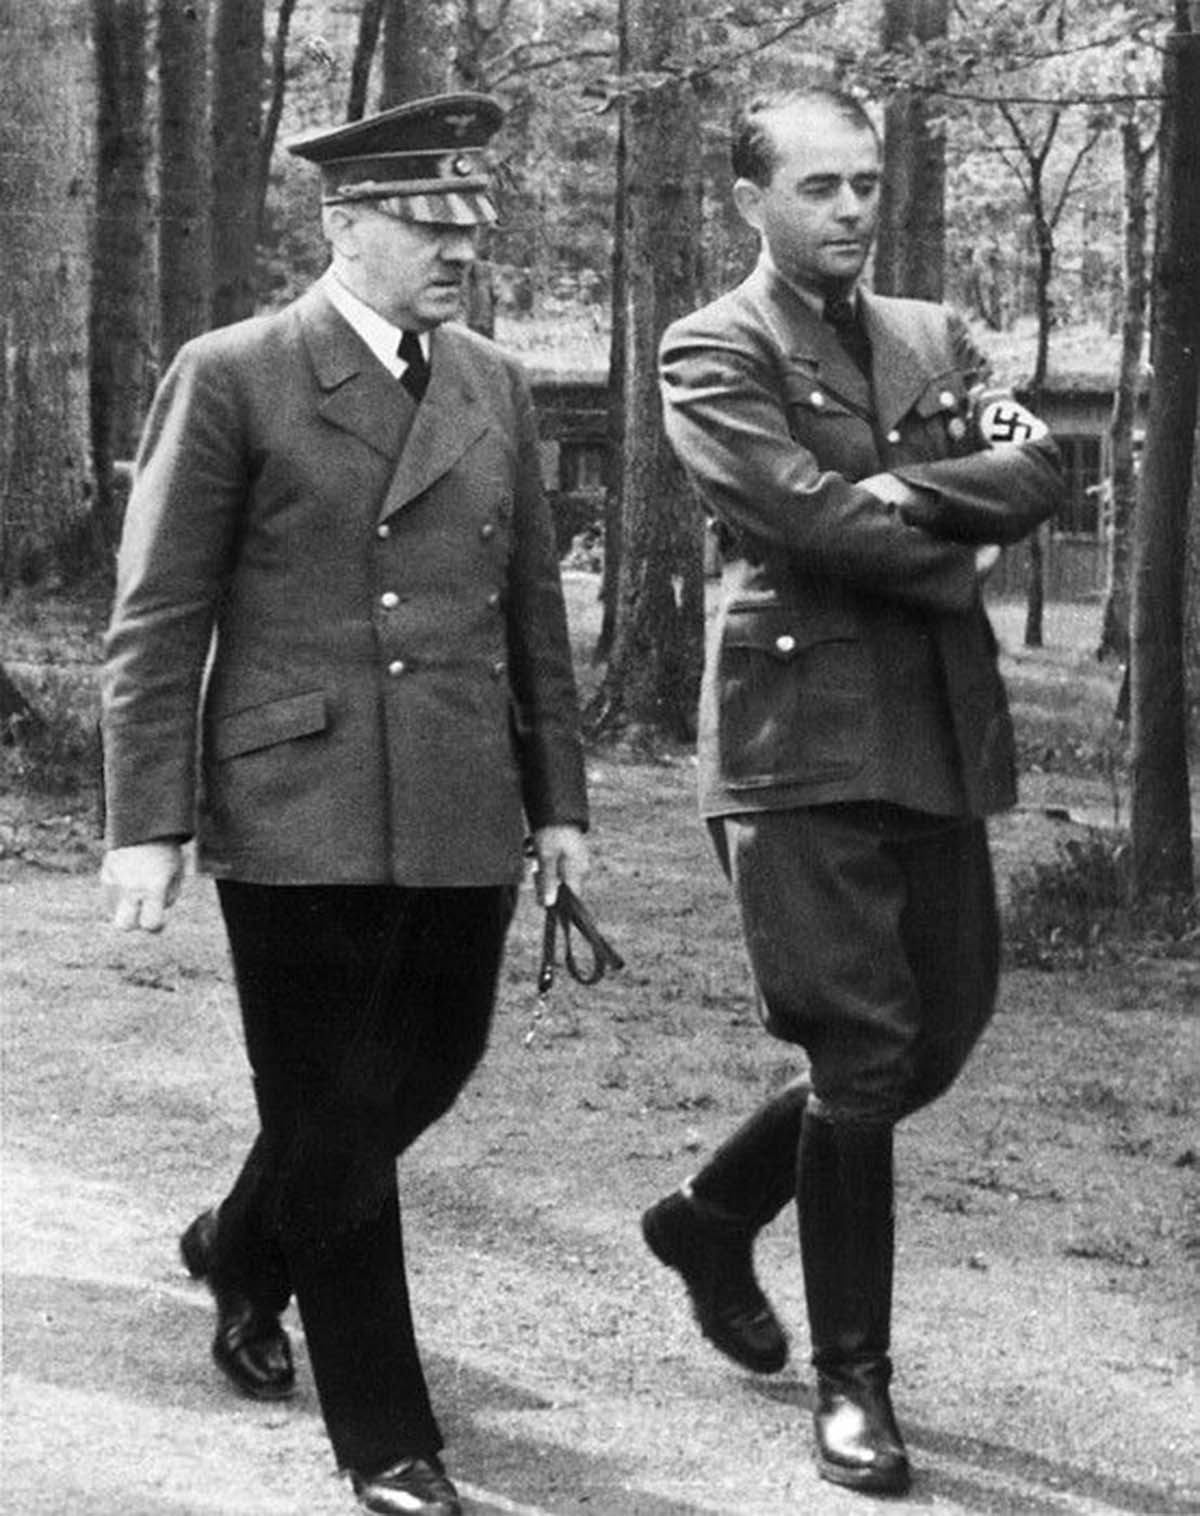 Speer and Hitler at the Wolfschanze during the war.